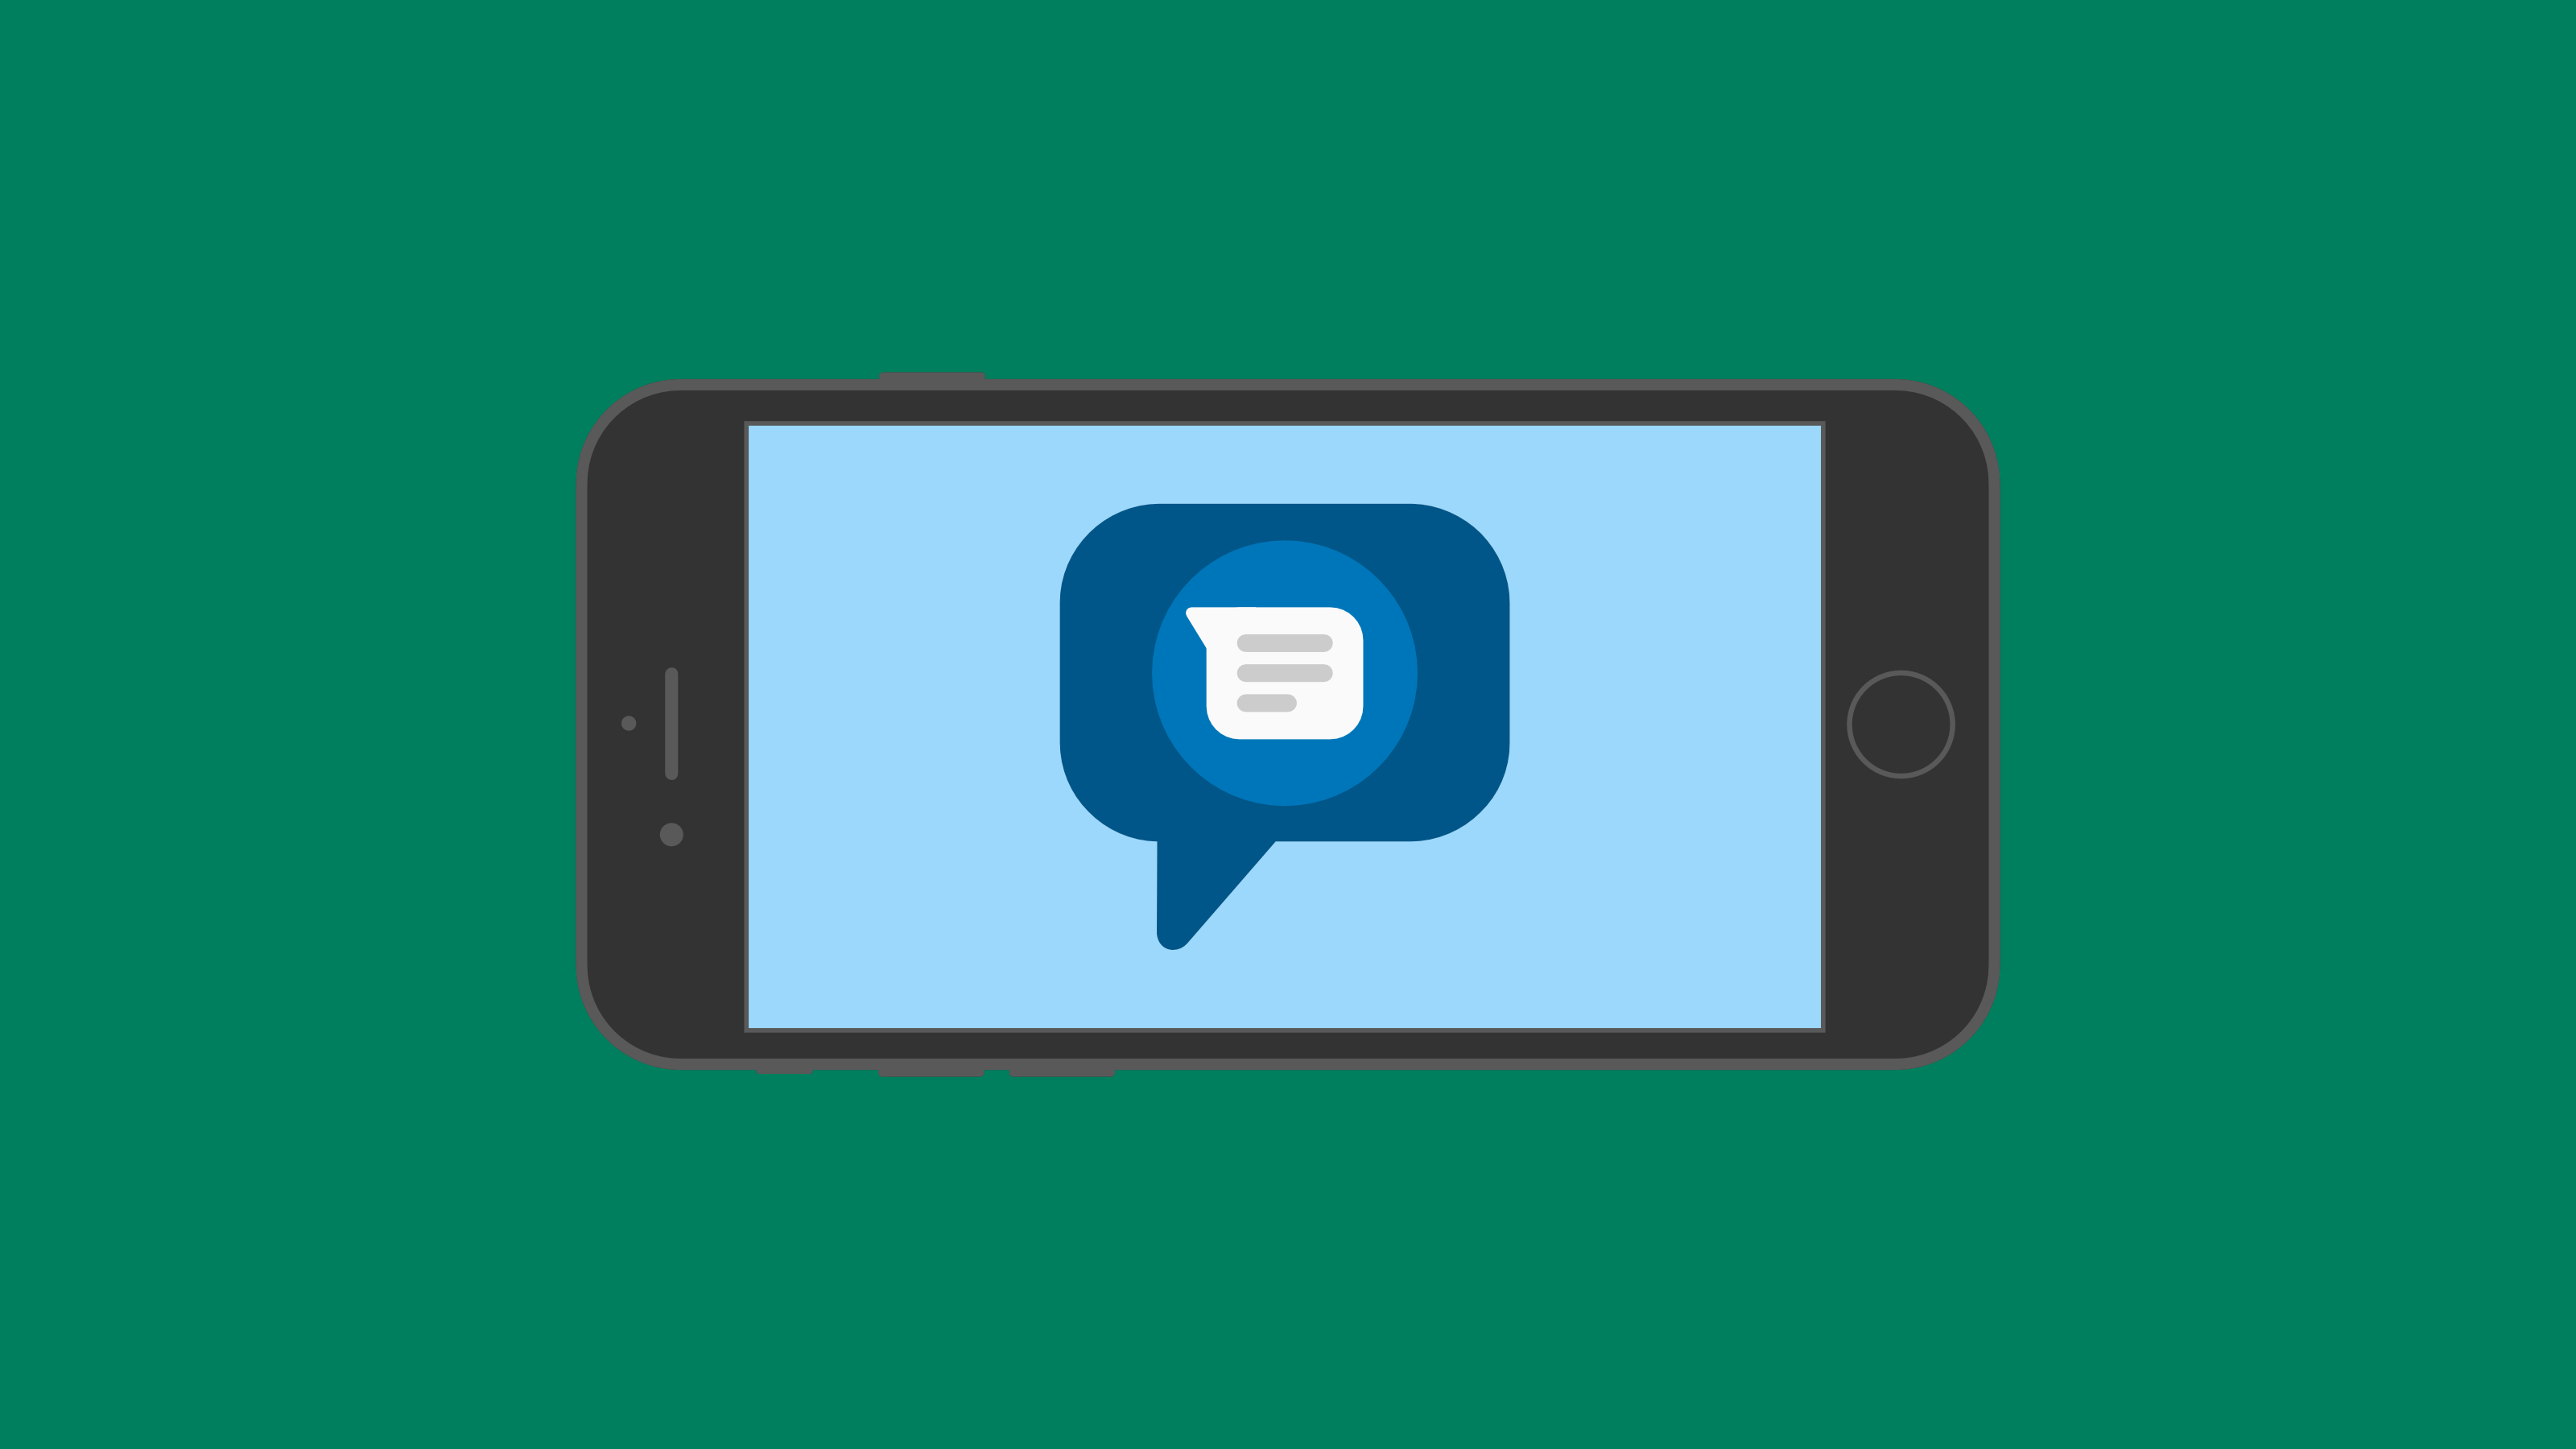 Messaging Apps & Brands - Messenger - Android Messages